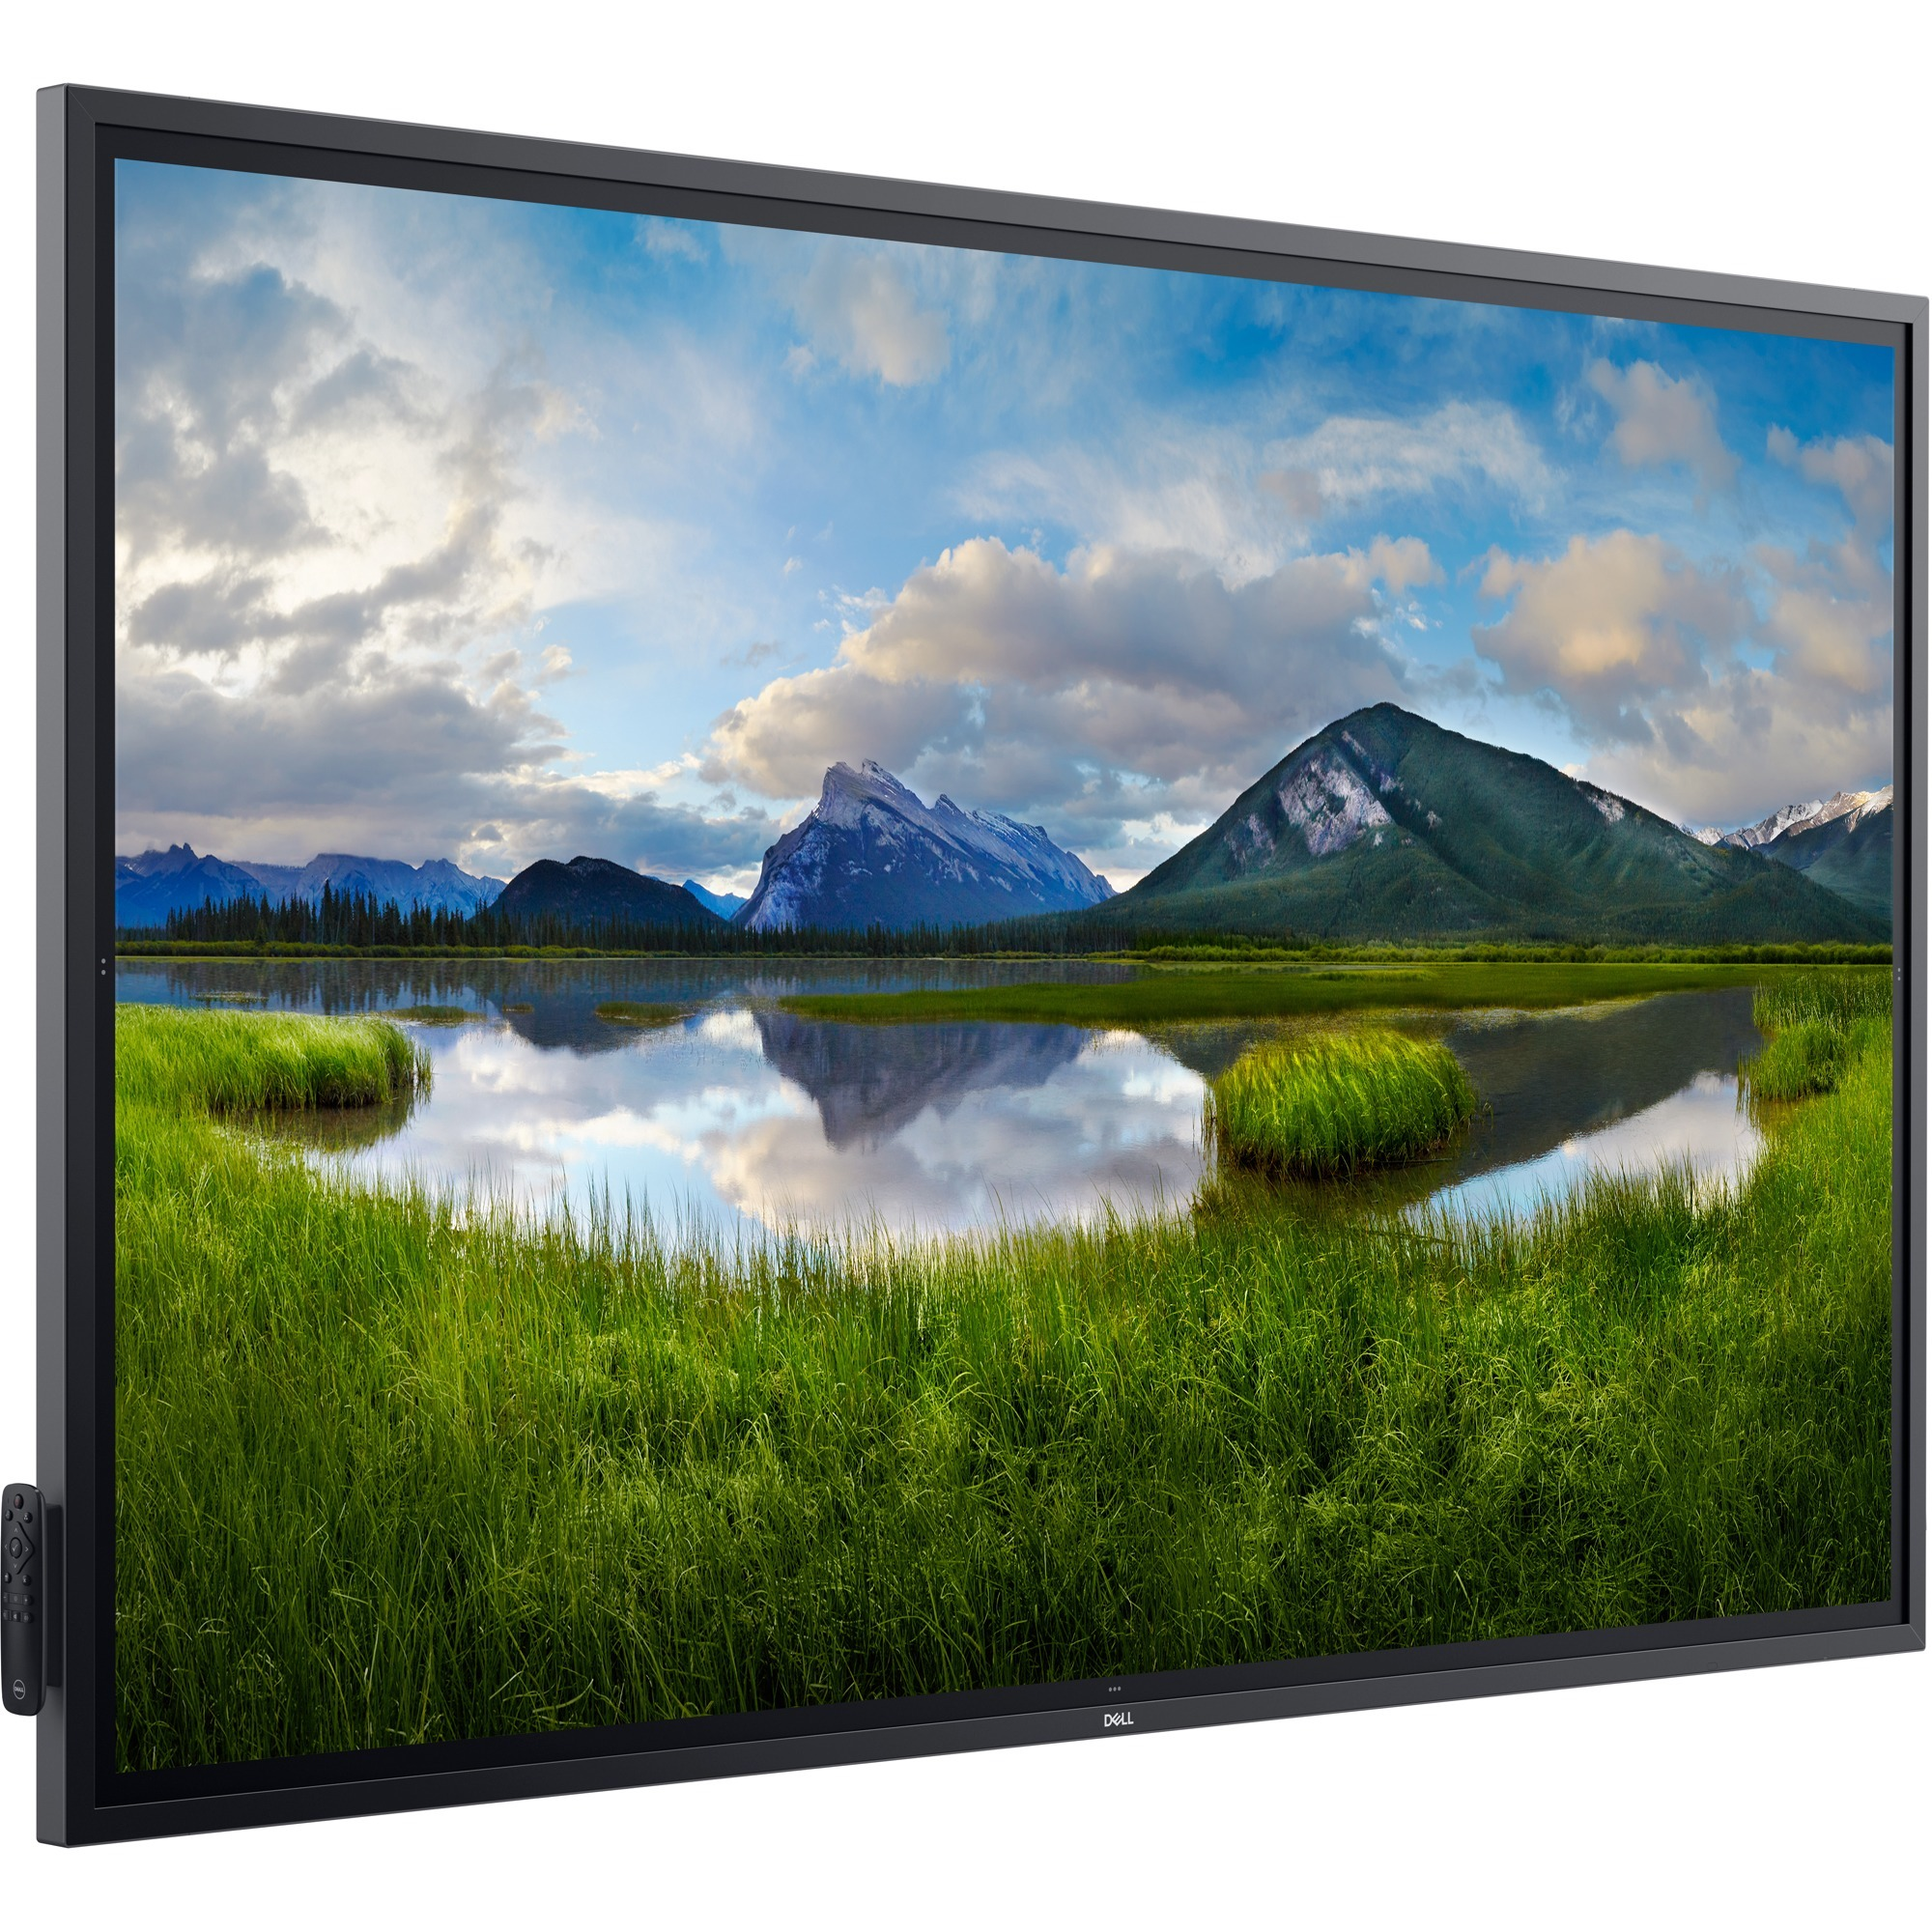 """Dell C8621QT 85.6"""" LCD Touchscreen Monitor - 16:9 - 8 ms GTG_subImage_1"""